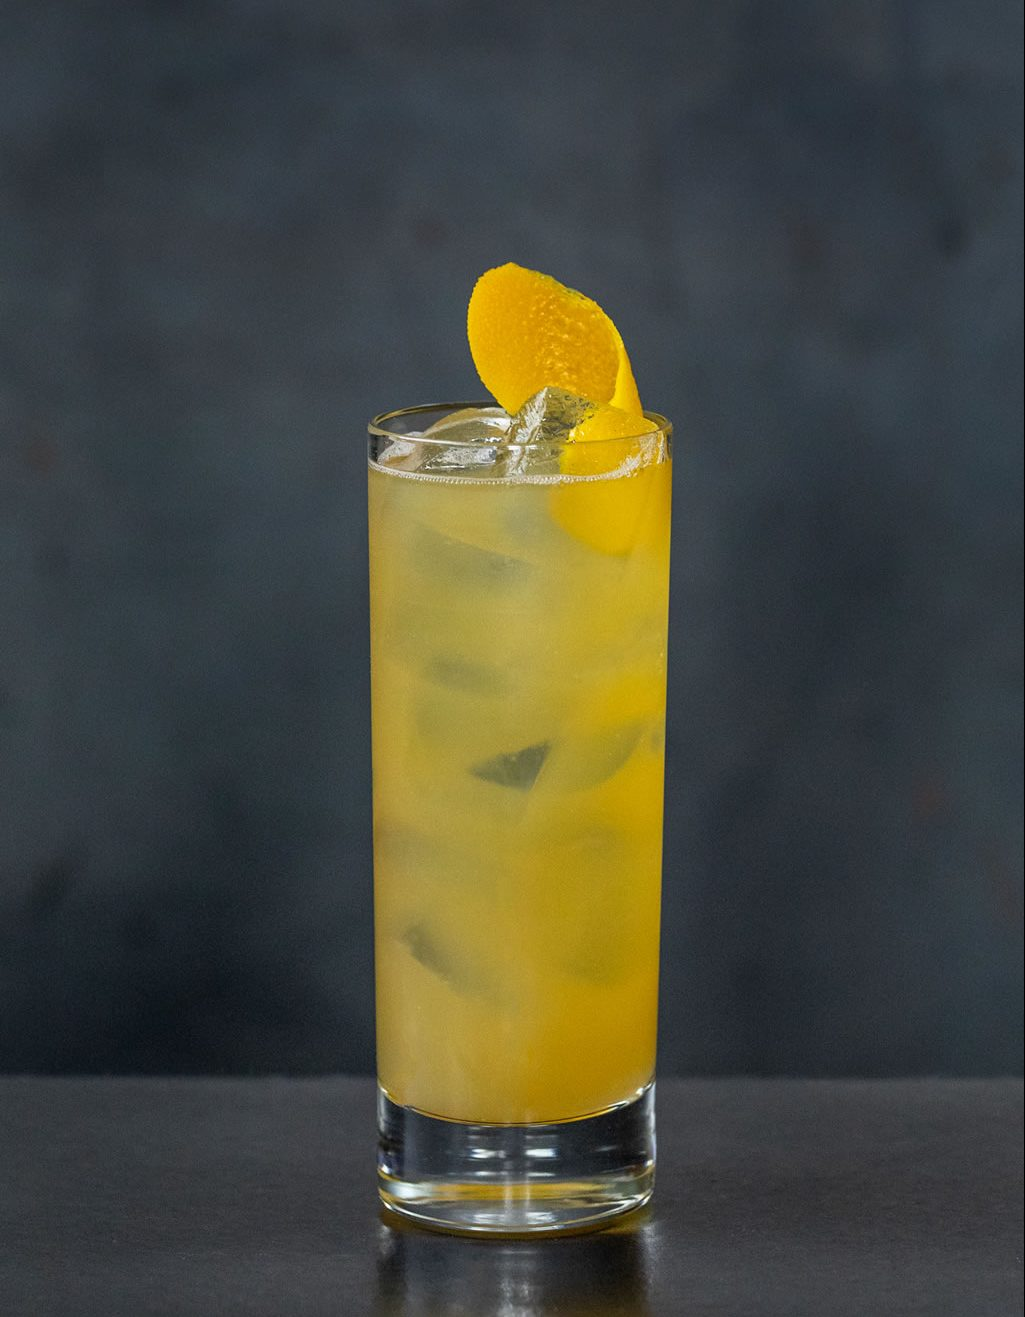 09-2019_OTOTO_Cocktail_Final Images_Web-Res_03